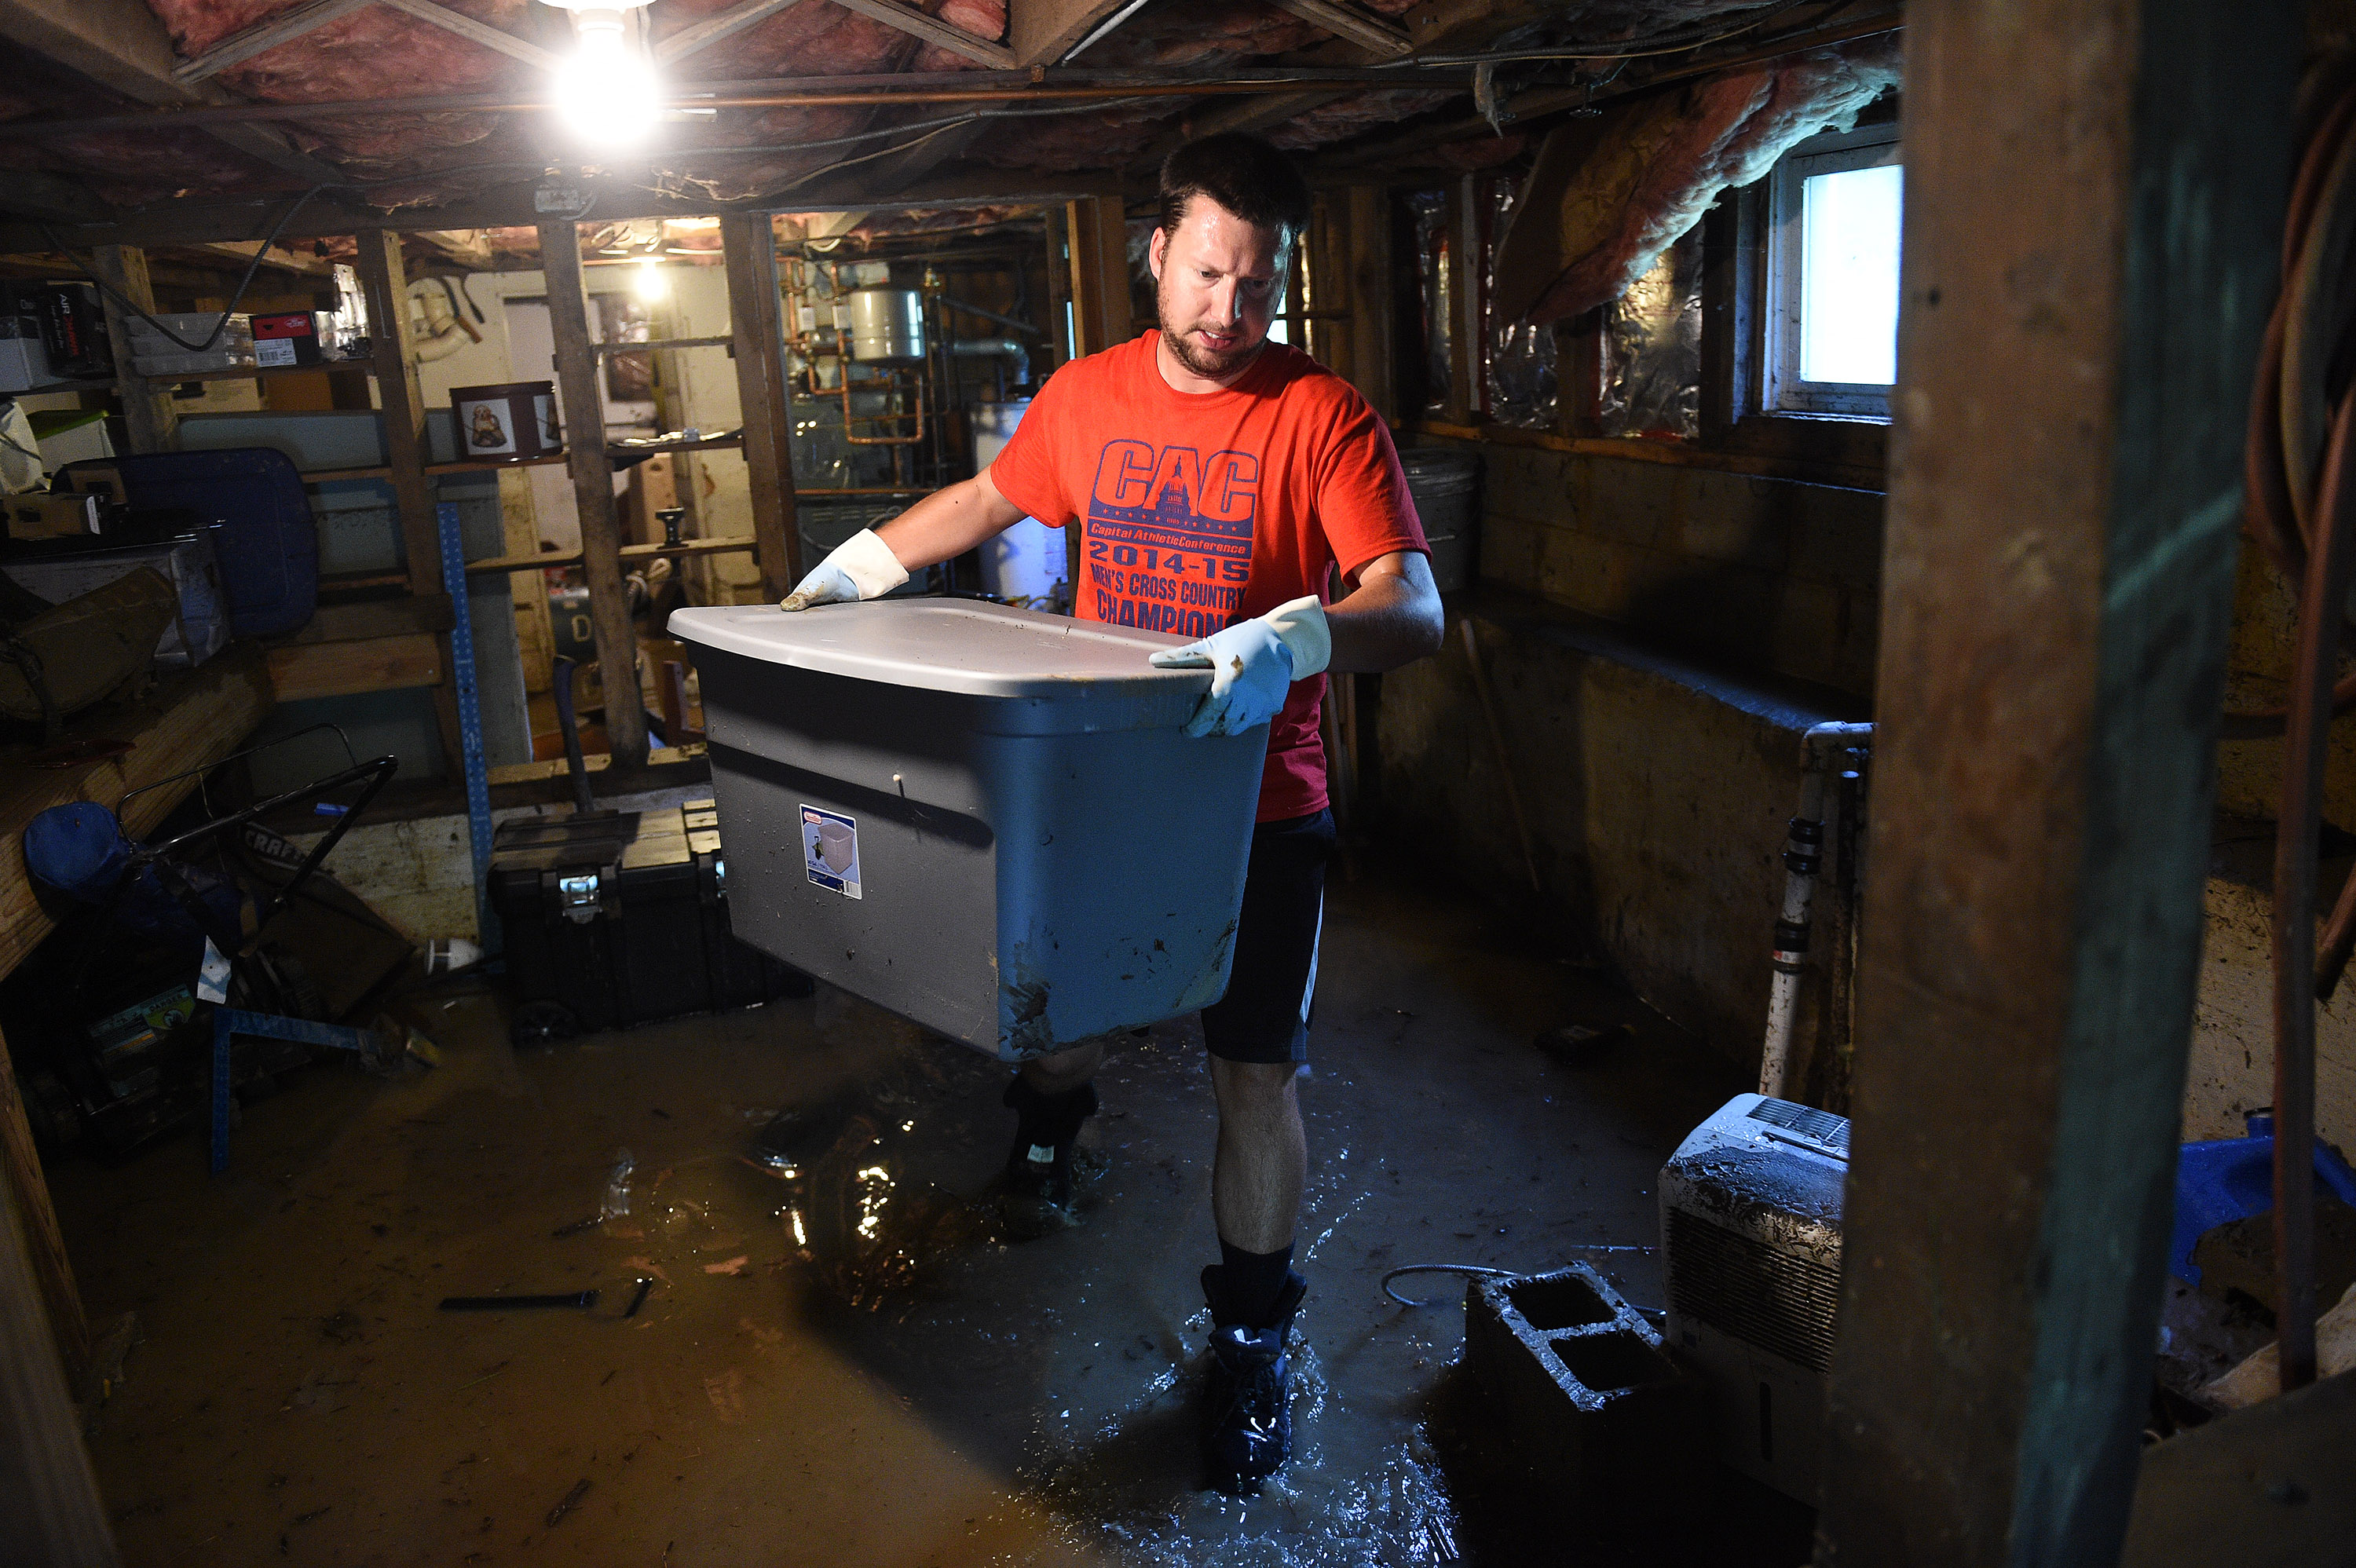 ELLICOTT CITY, MD - JULY 31: Zack Dickerson, 29, red t-shirt,